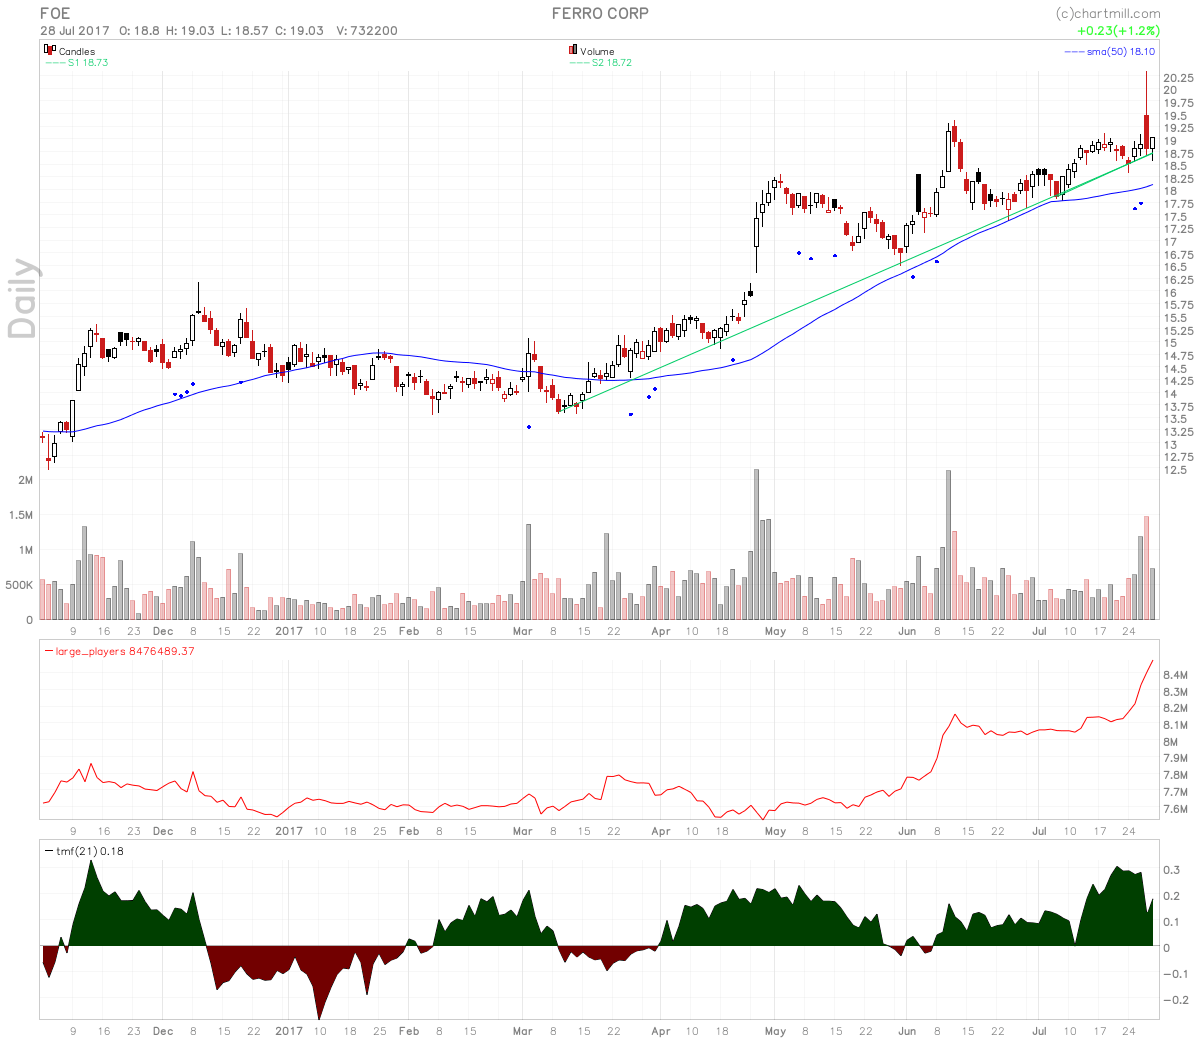 Ferro Corporation Stock Strong Uptrend On Rising Large Players Volume